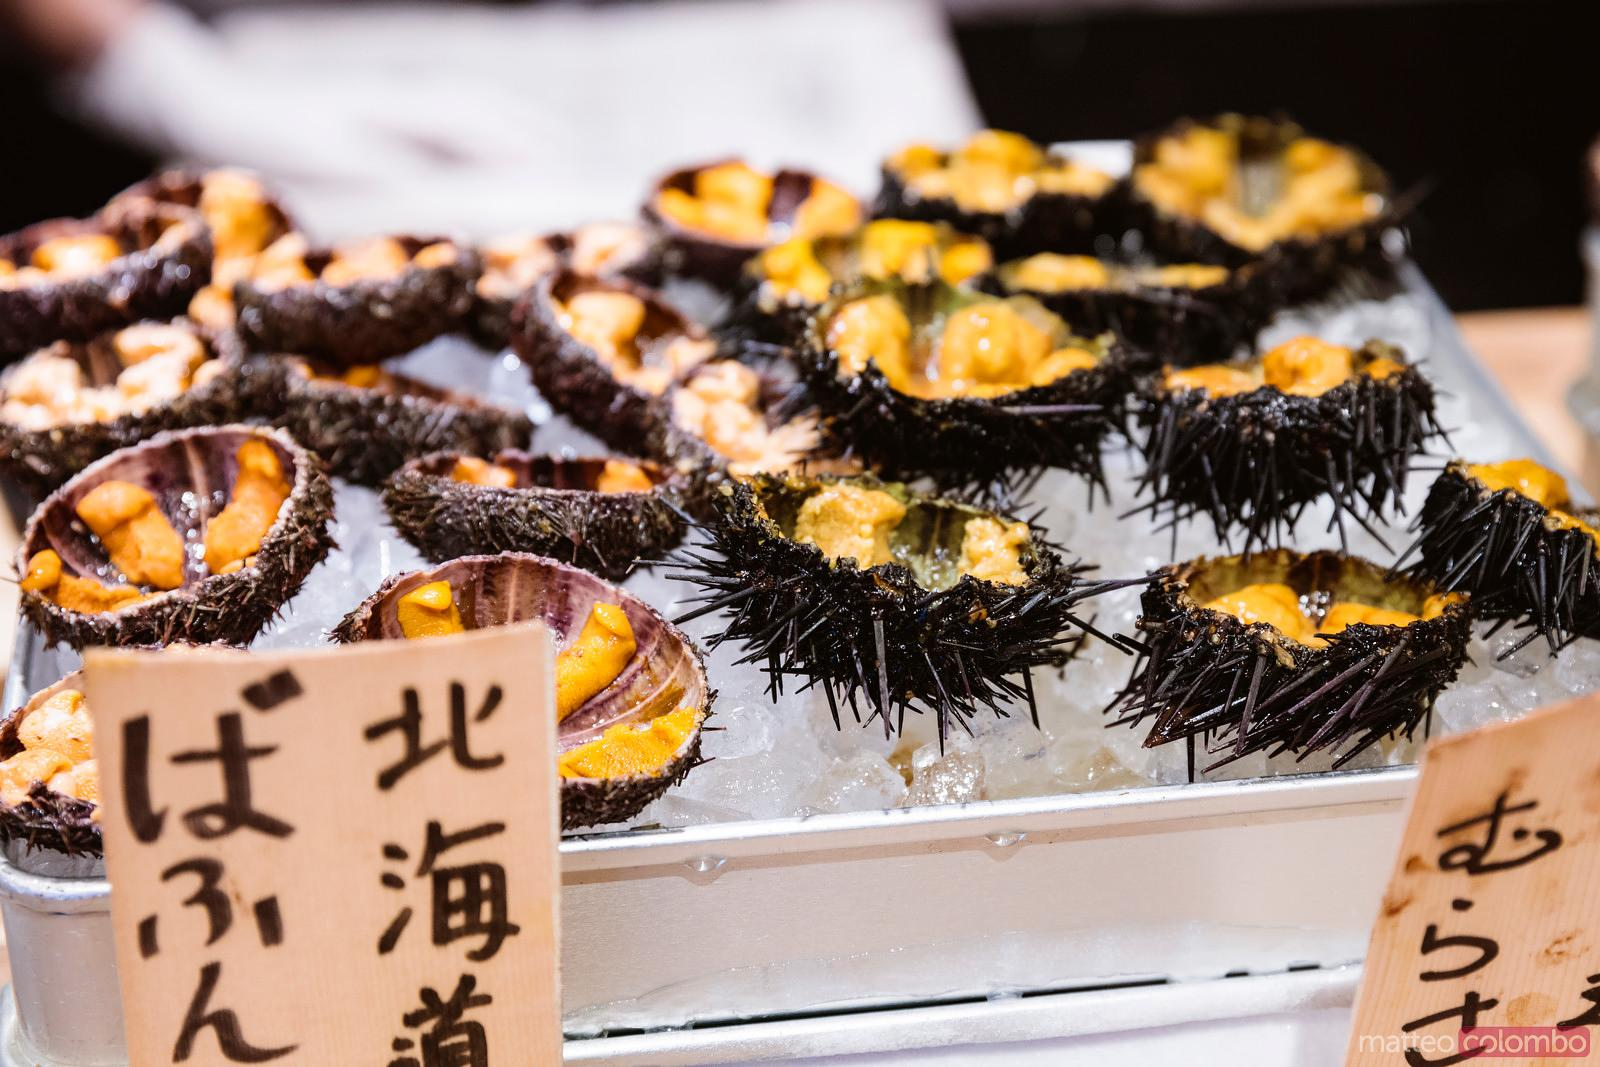 Matteo Colombo Travel Photography Sea Urchins At Tsukiji Fish